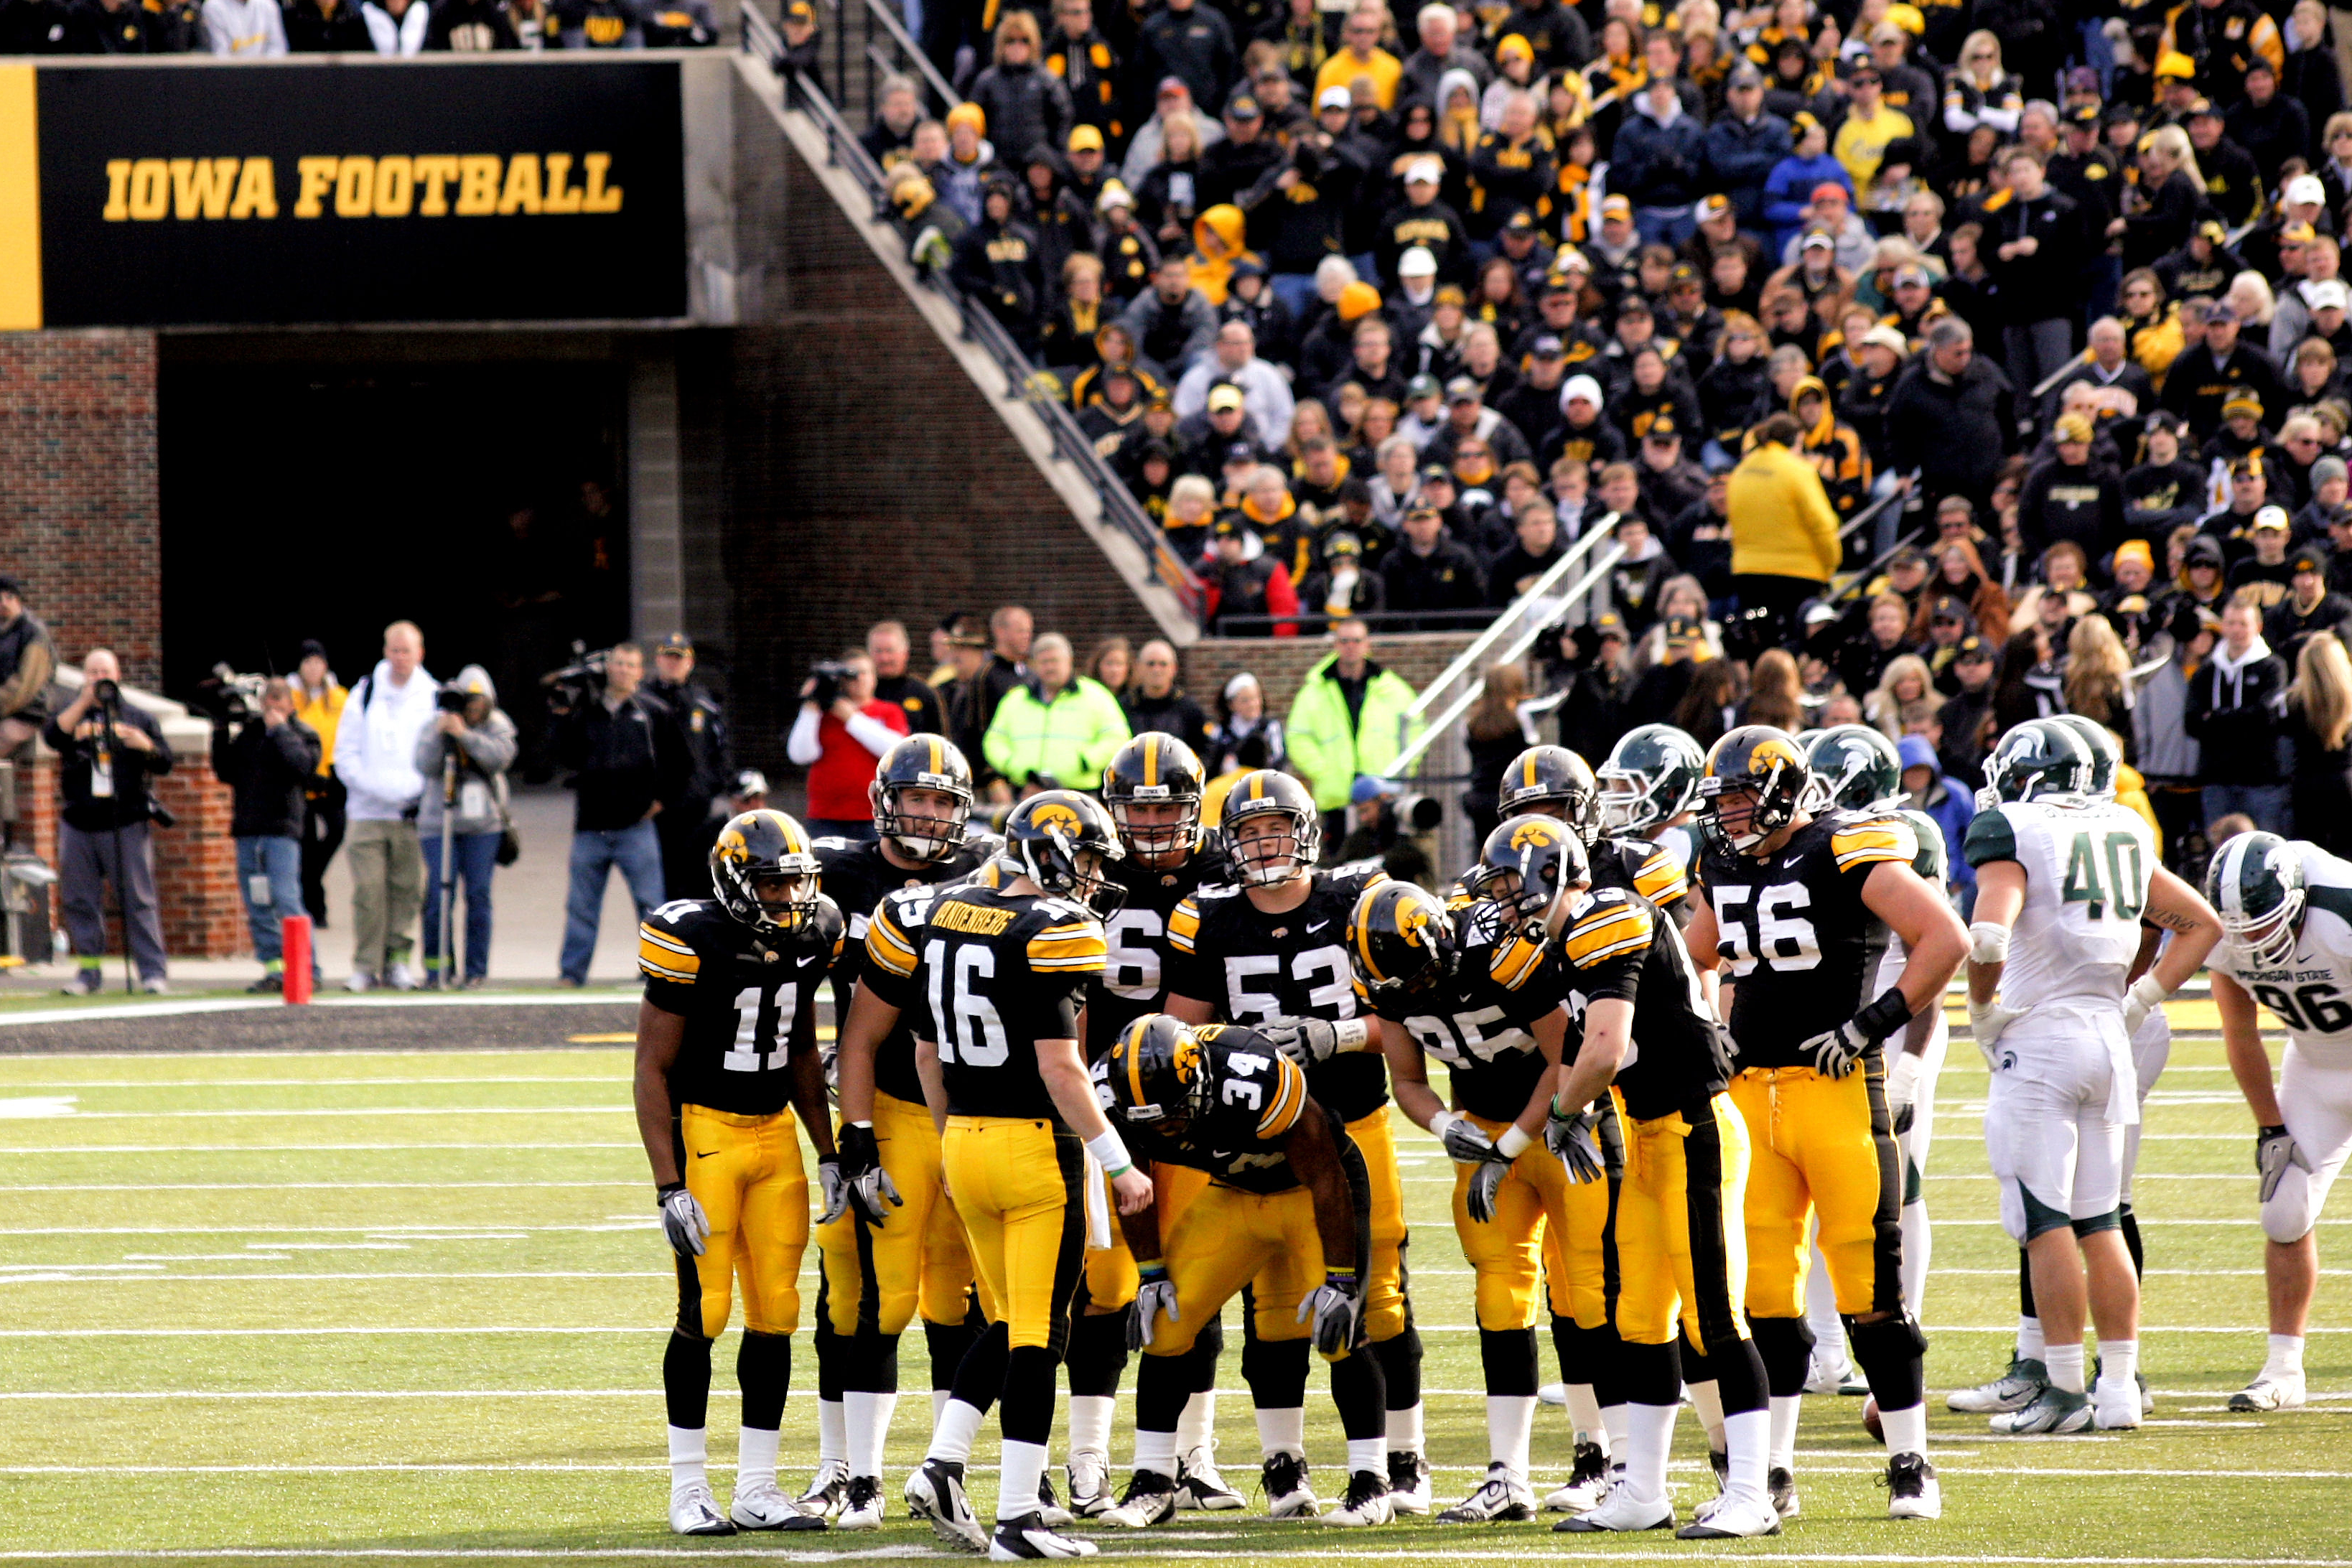 iowa football - photo #8